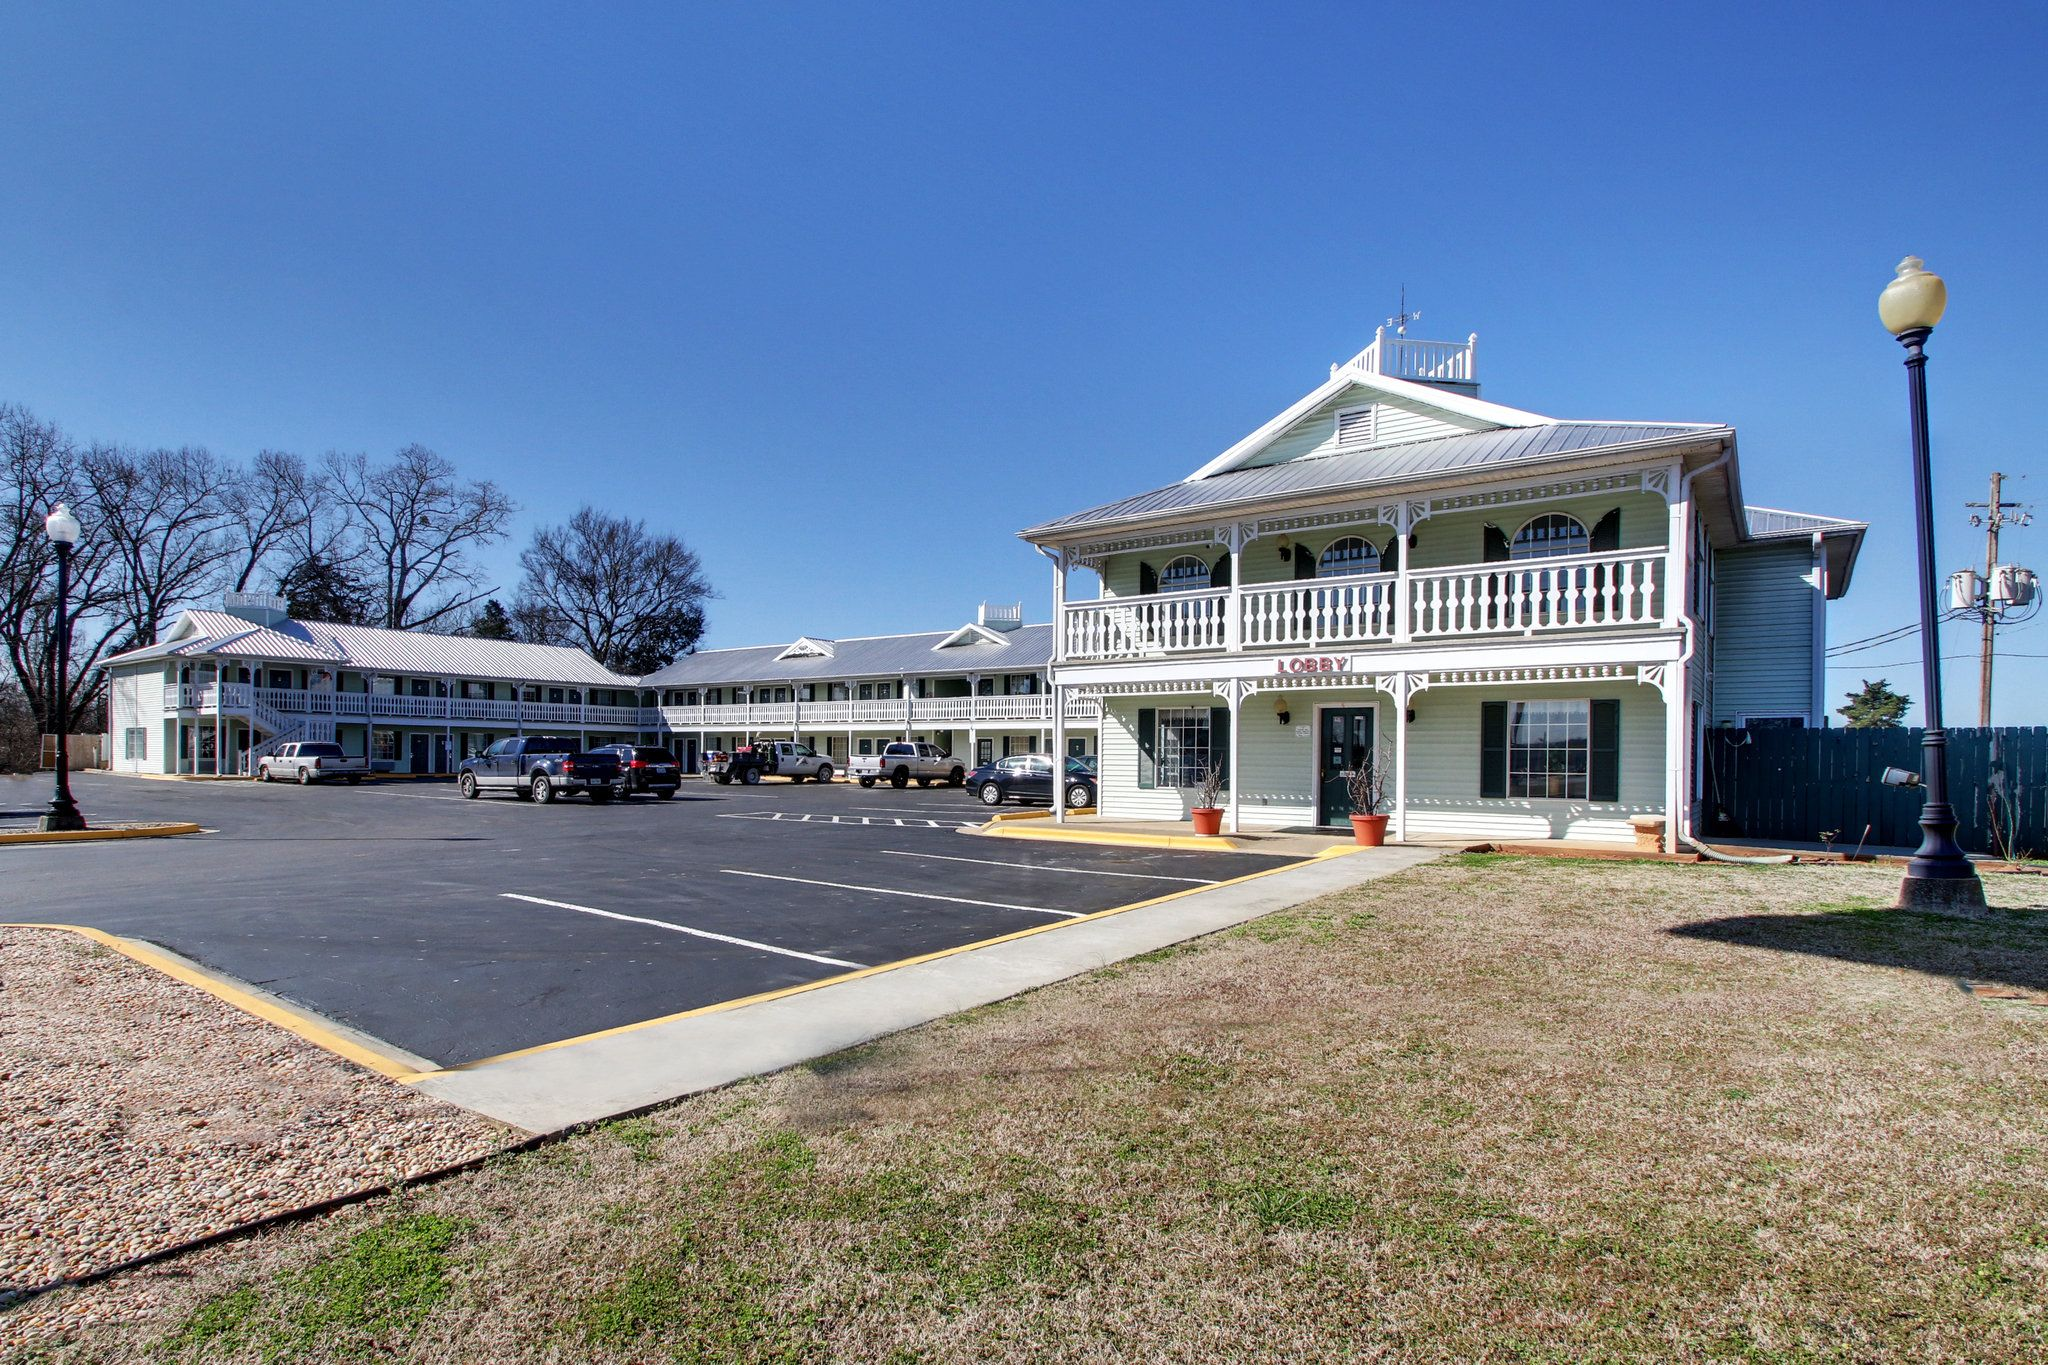 Key West Inn Tuscumbia